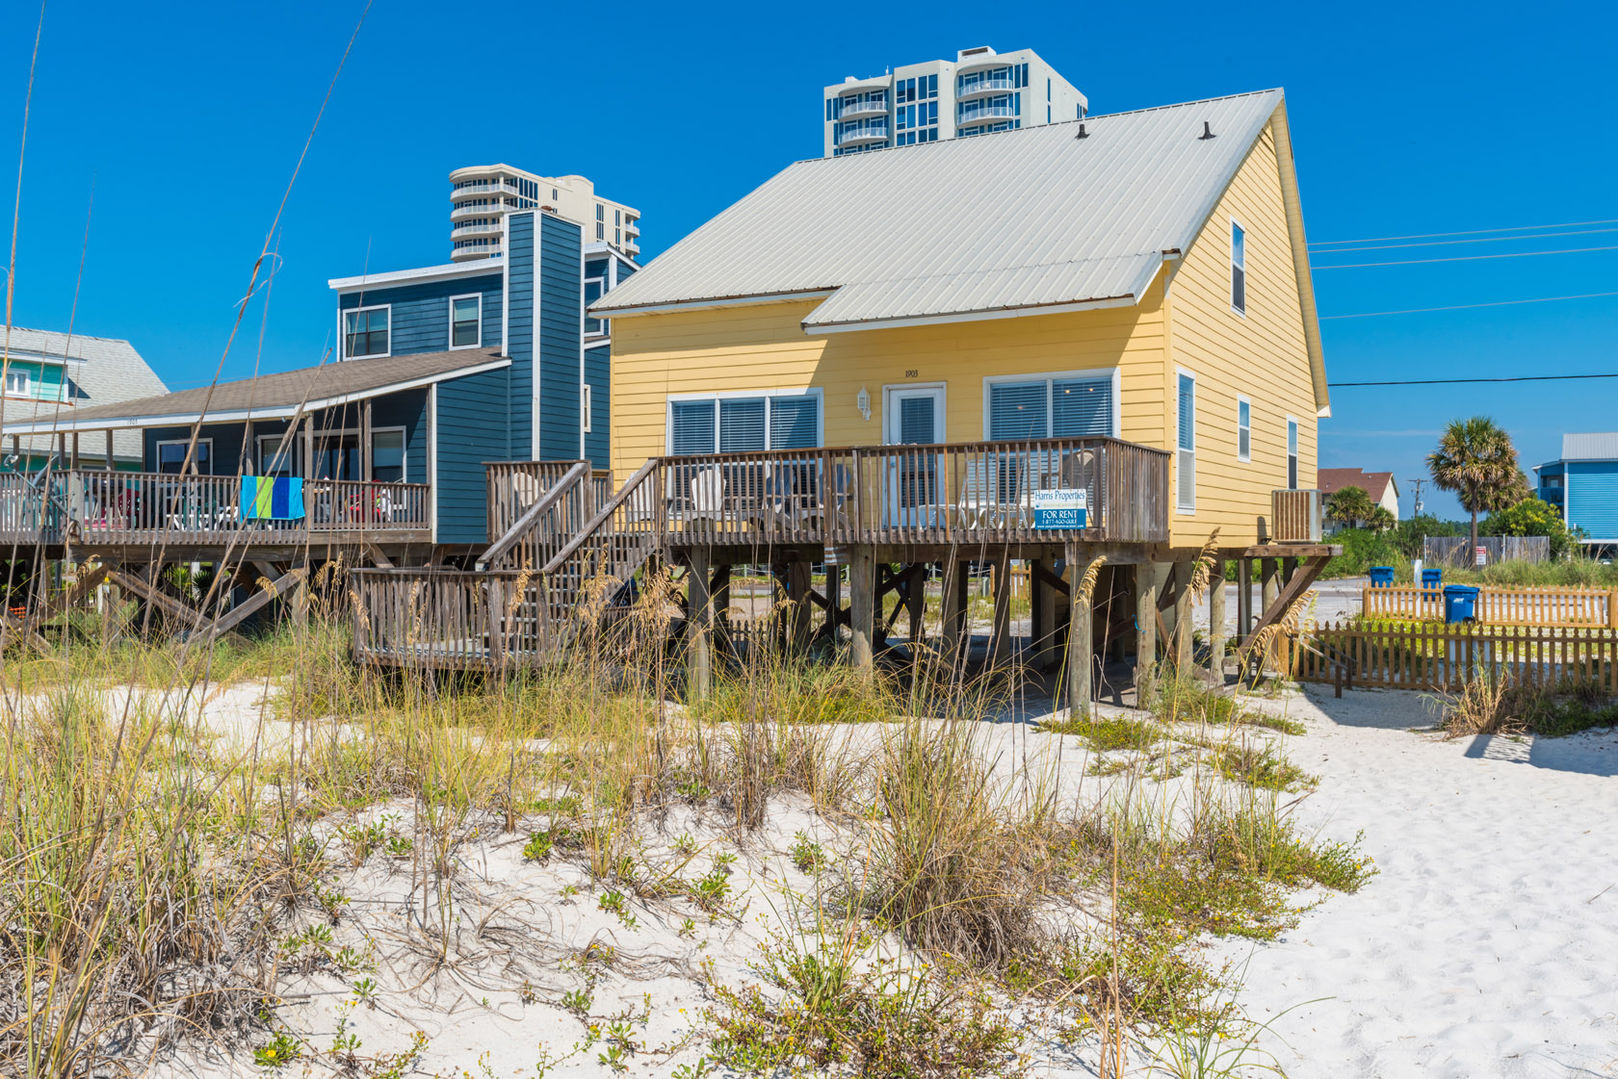 Rear Picture of our Beachfront Rental.